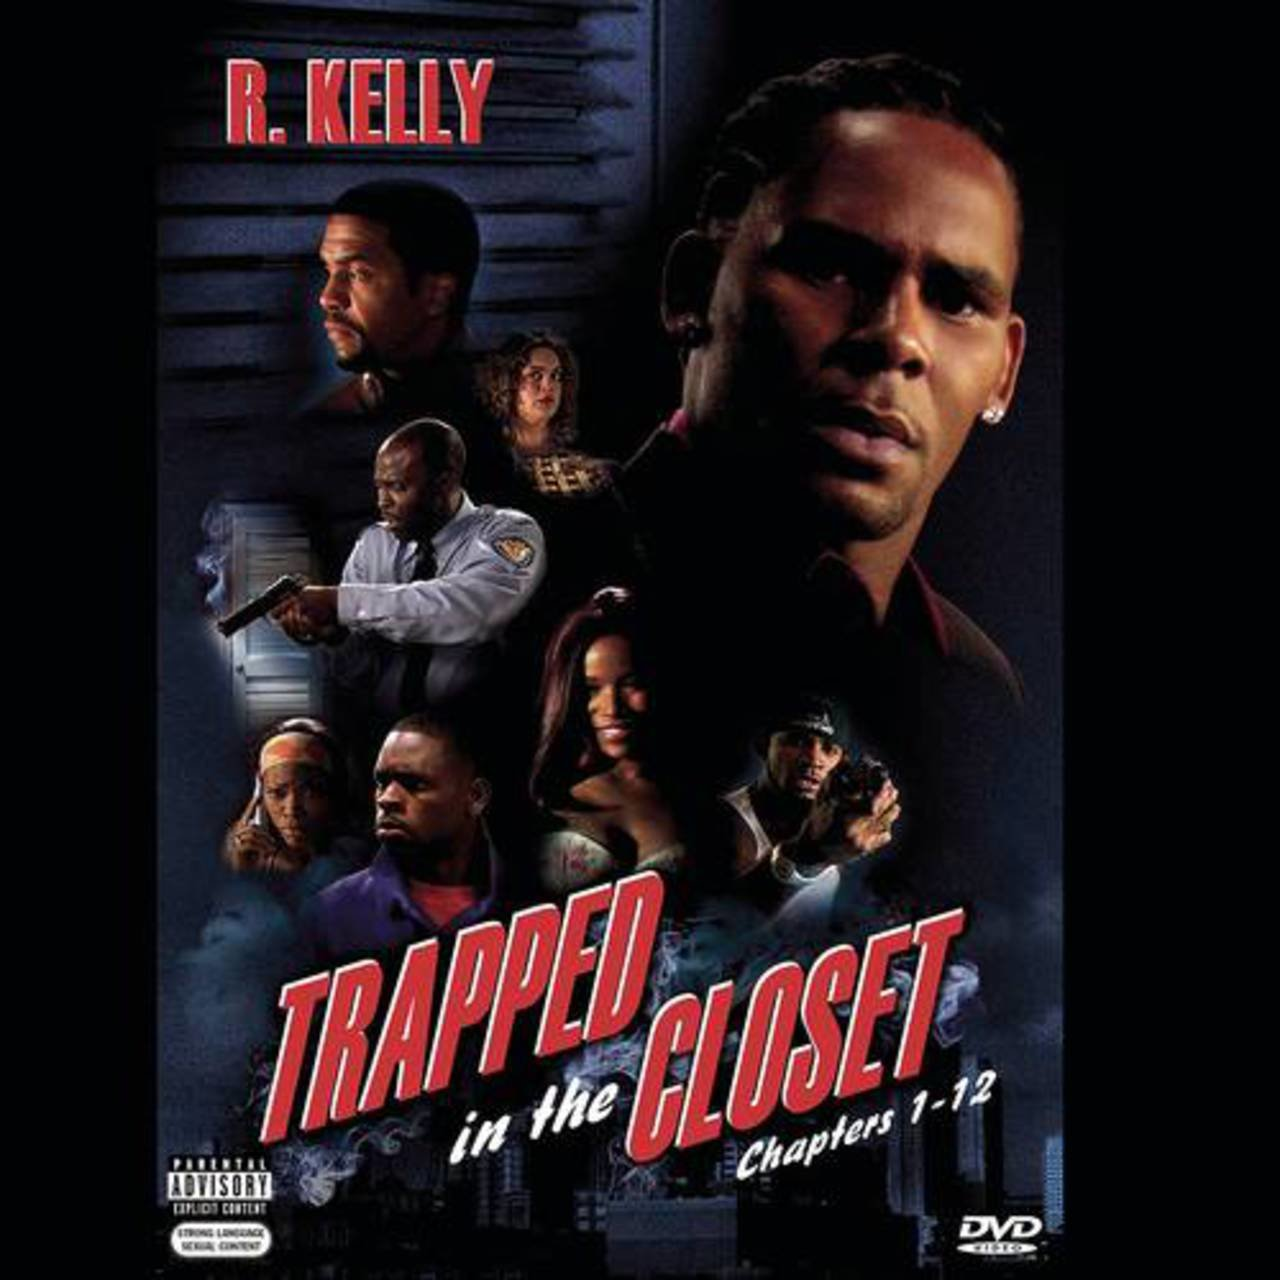 R. Kelly - Trapped In The Closet (Chapters 1-12)